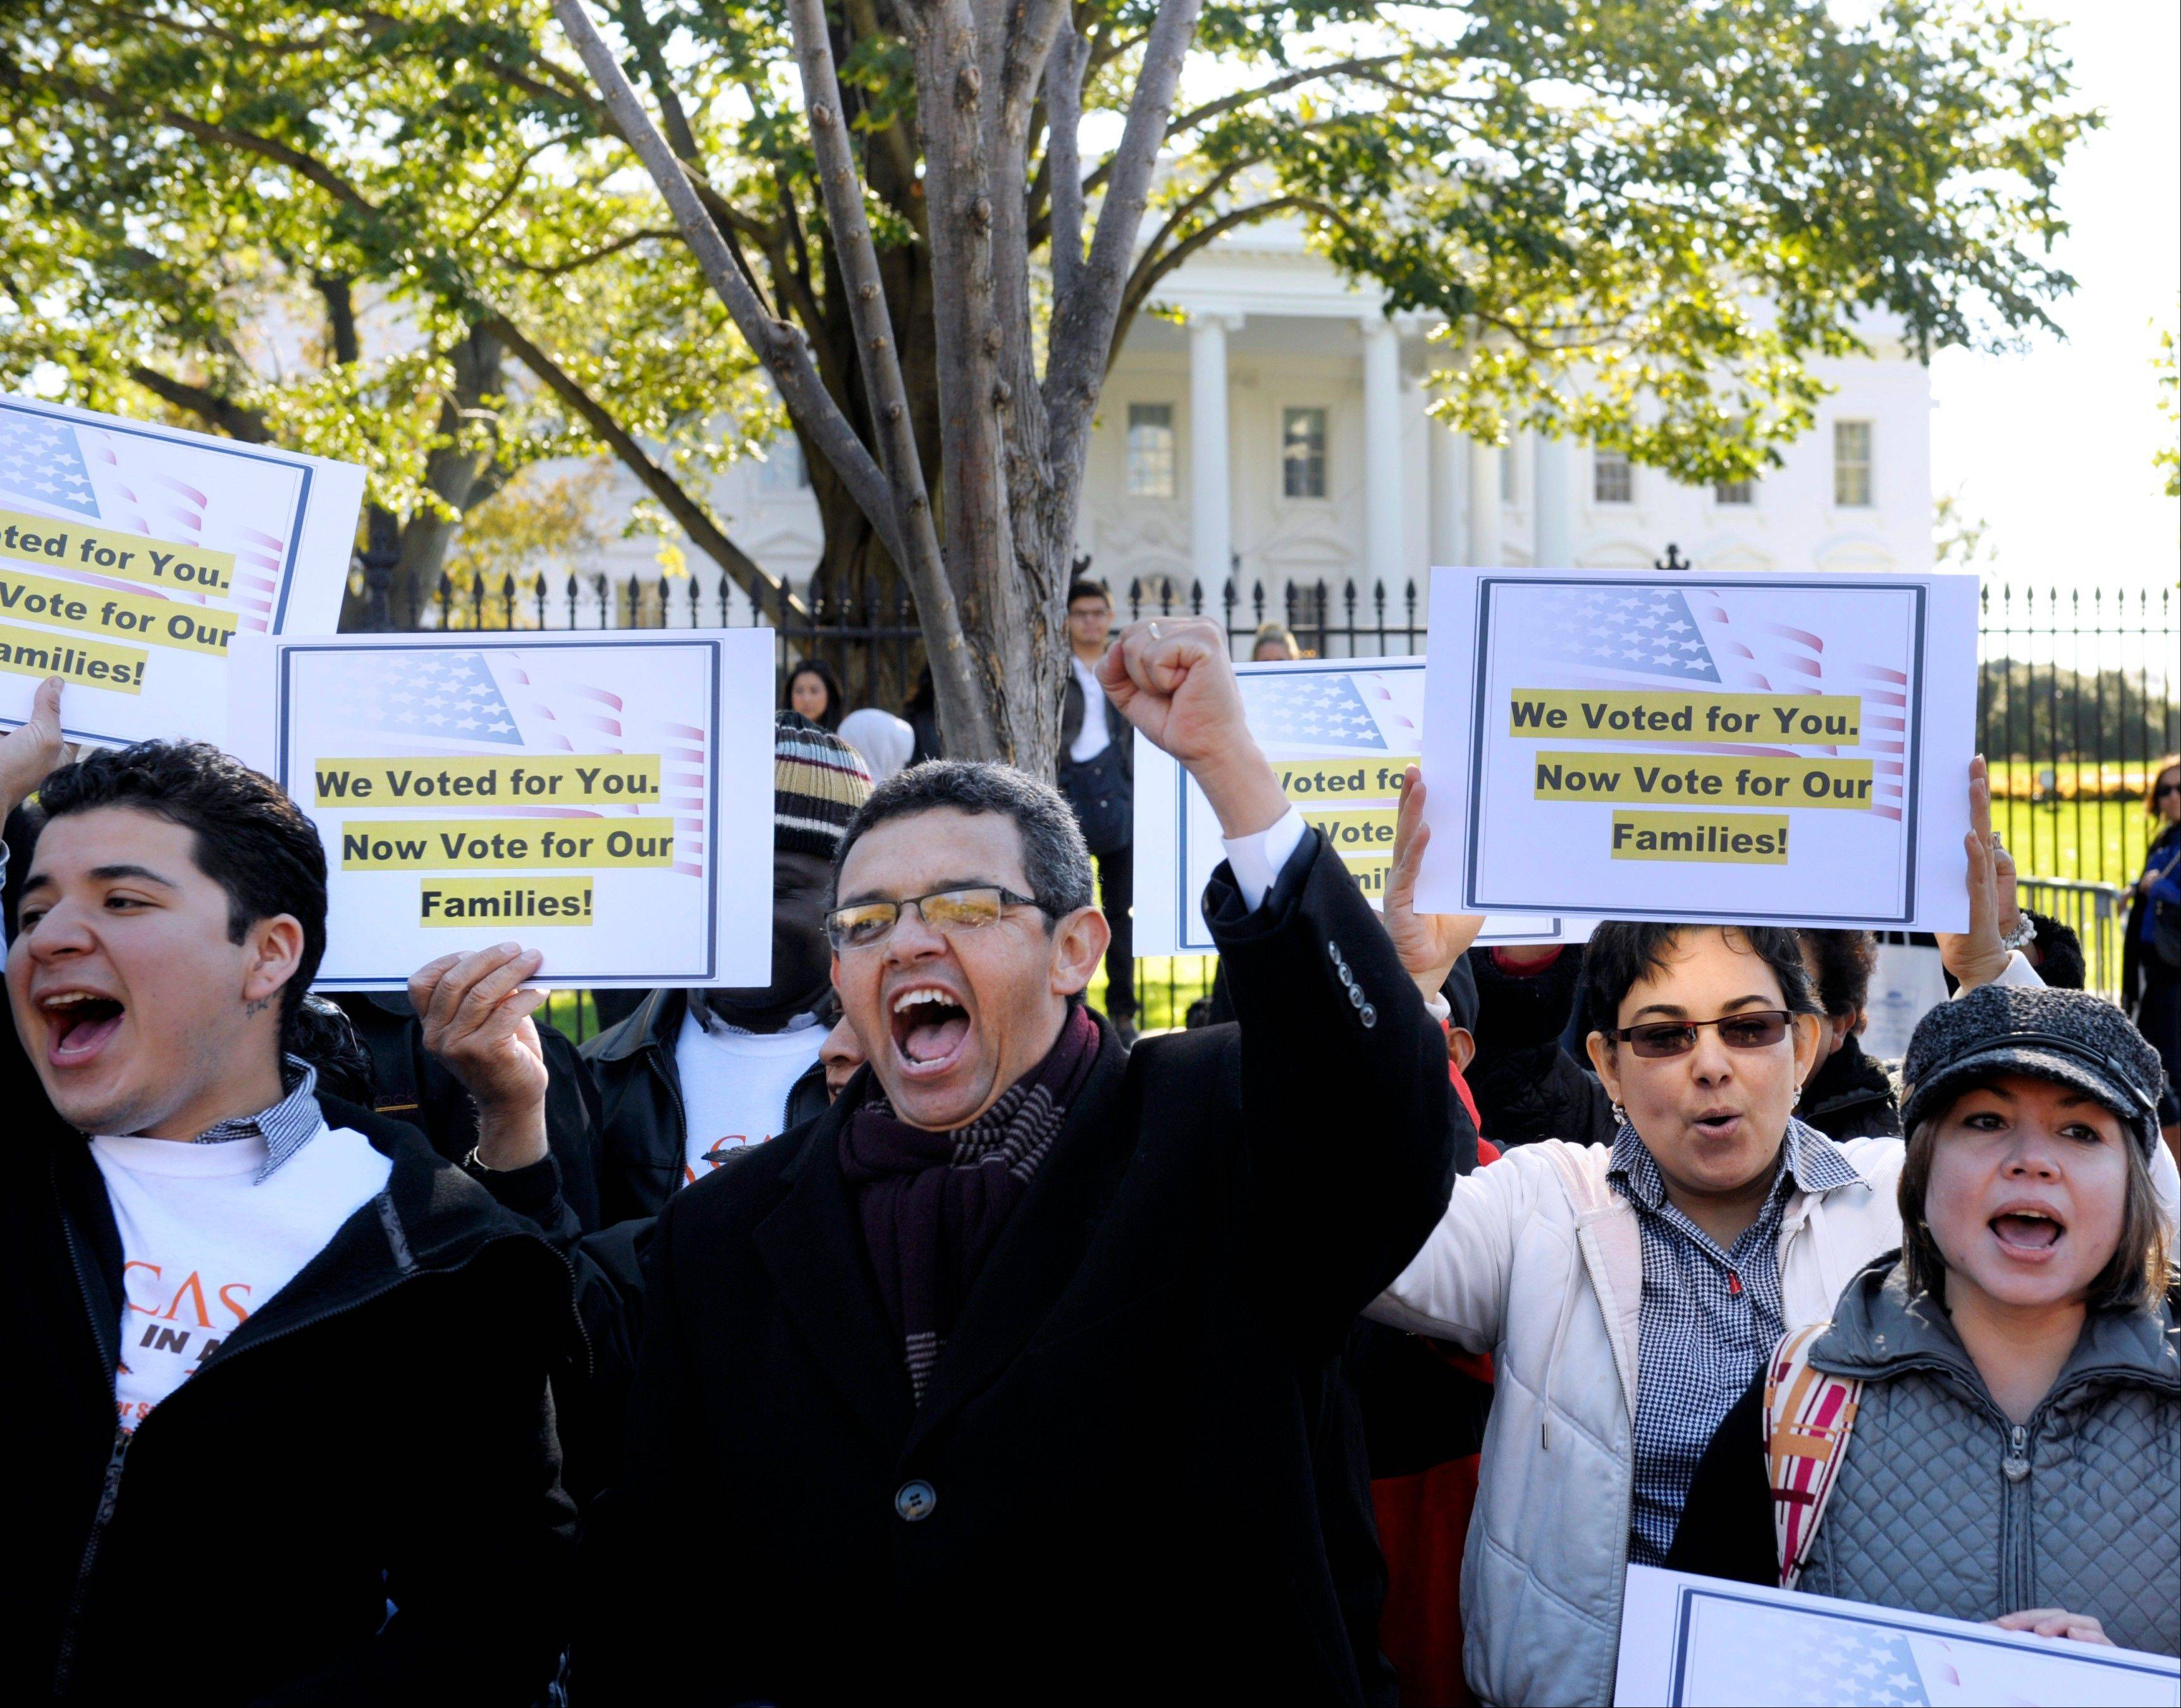 Gustavo Torres, director, Casa in Action, center, and others rally in front of the White House on Thursday, calling on President Barack Obama to fulfill his promise of passing comprehensive immigration reform.